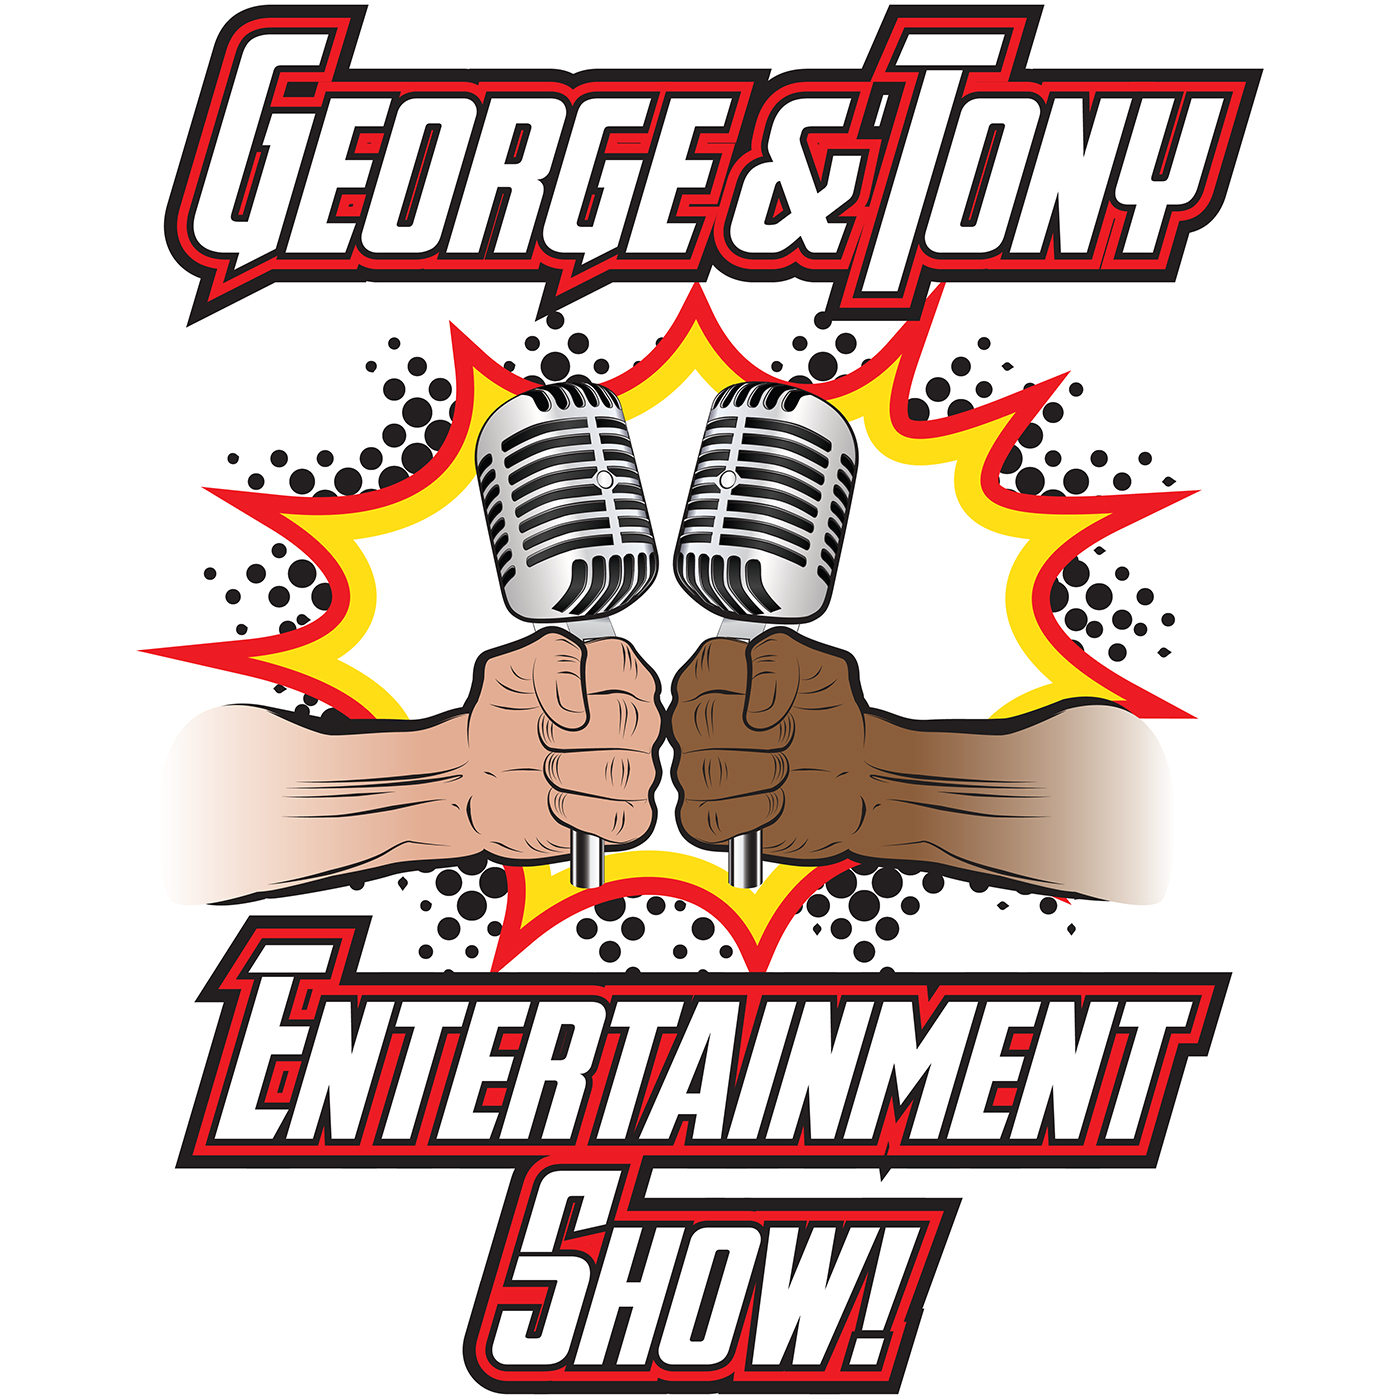 George and Tony Entertainment Show #66